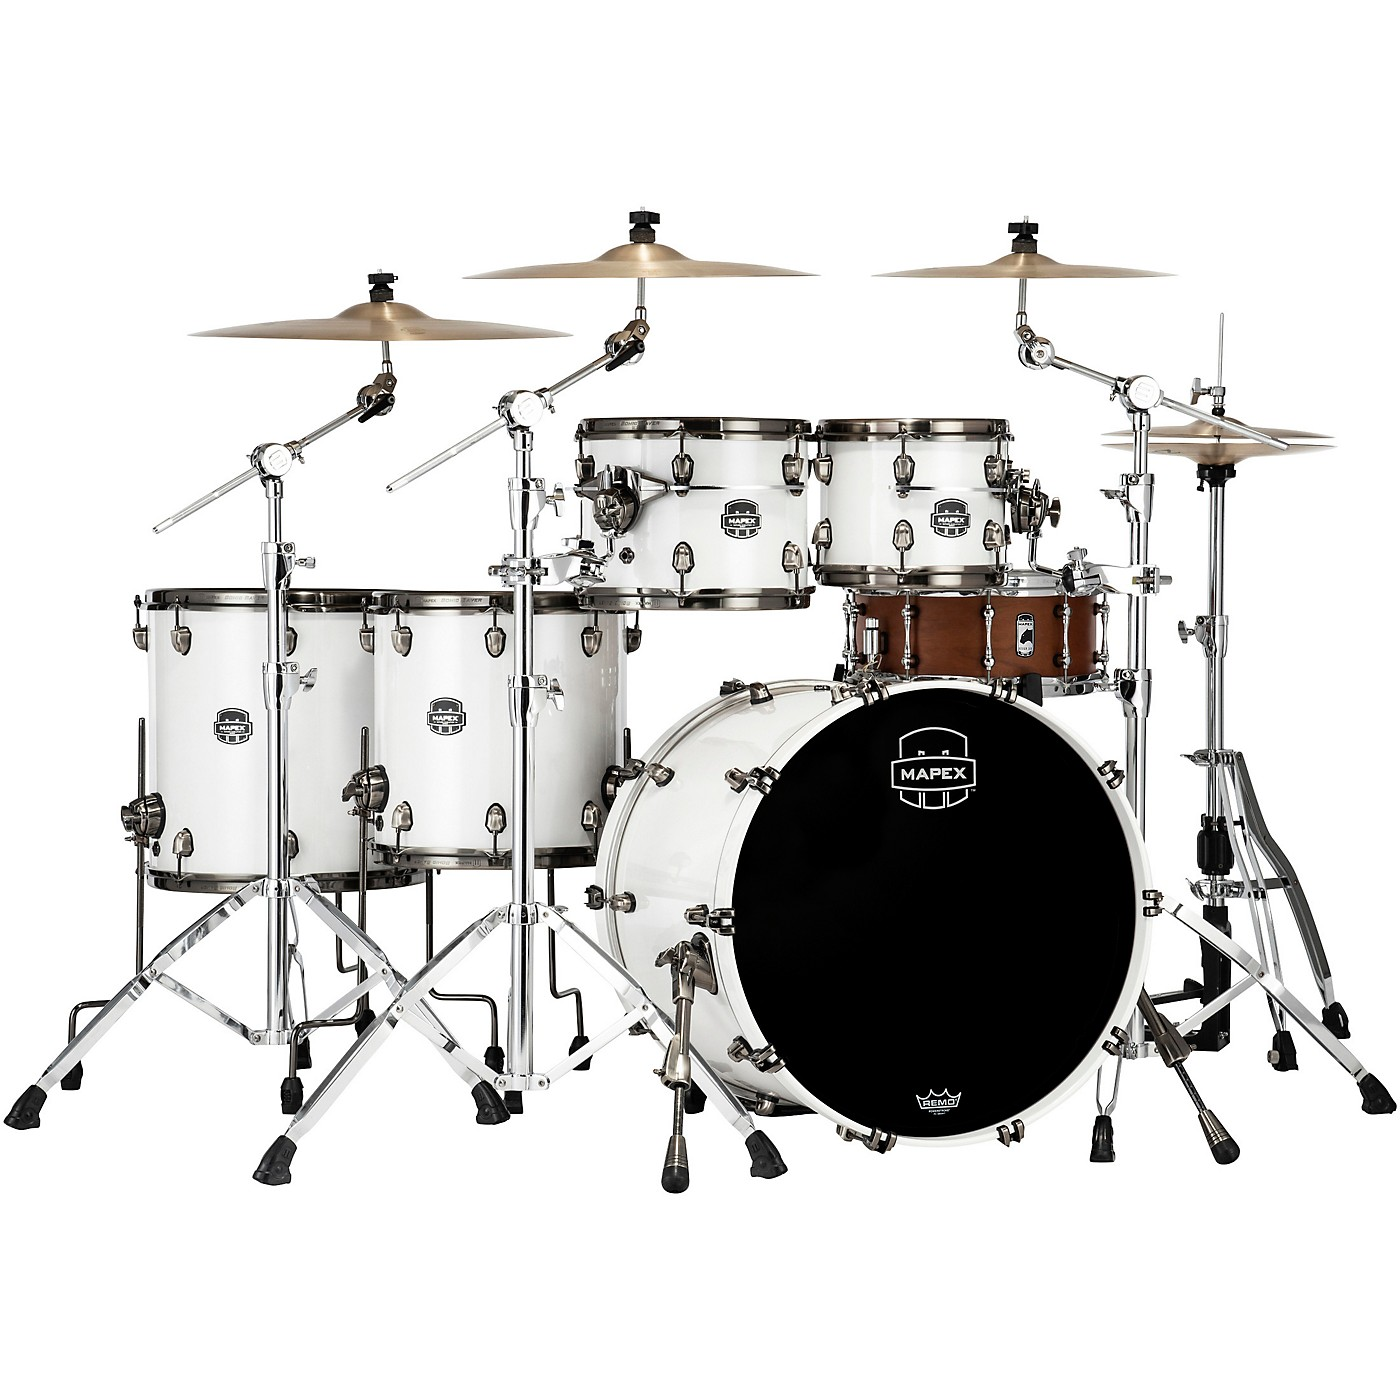 Mapex Saturn Evolution Workhorse Birch 5-Piece Shell Pack with 22 in. Bass Drum thumbnail